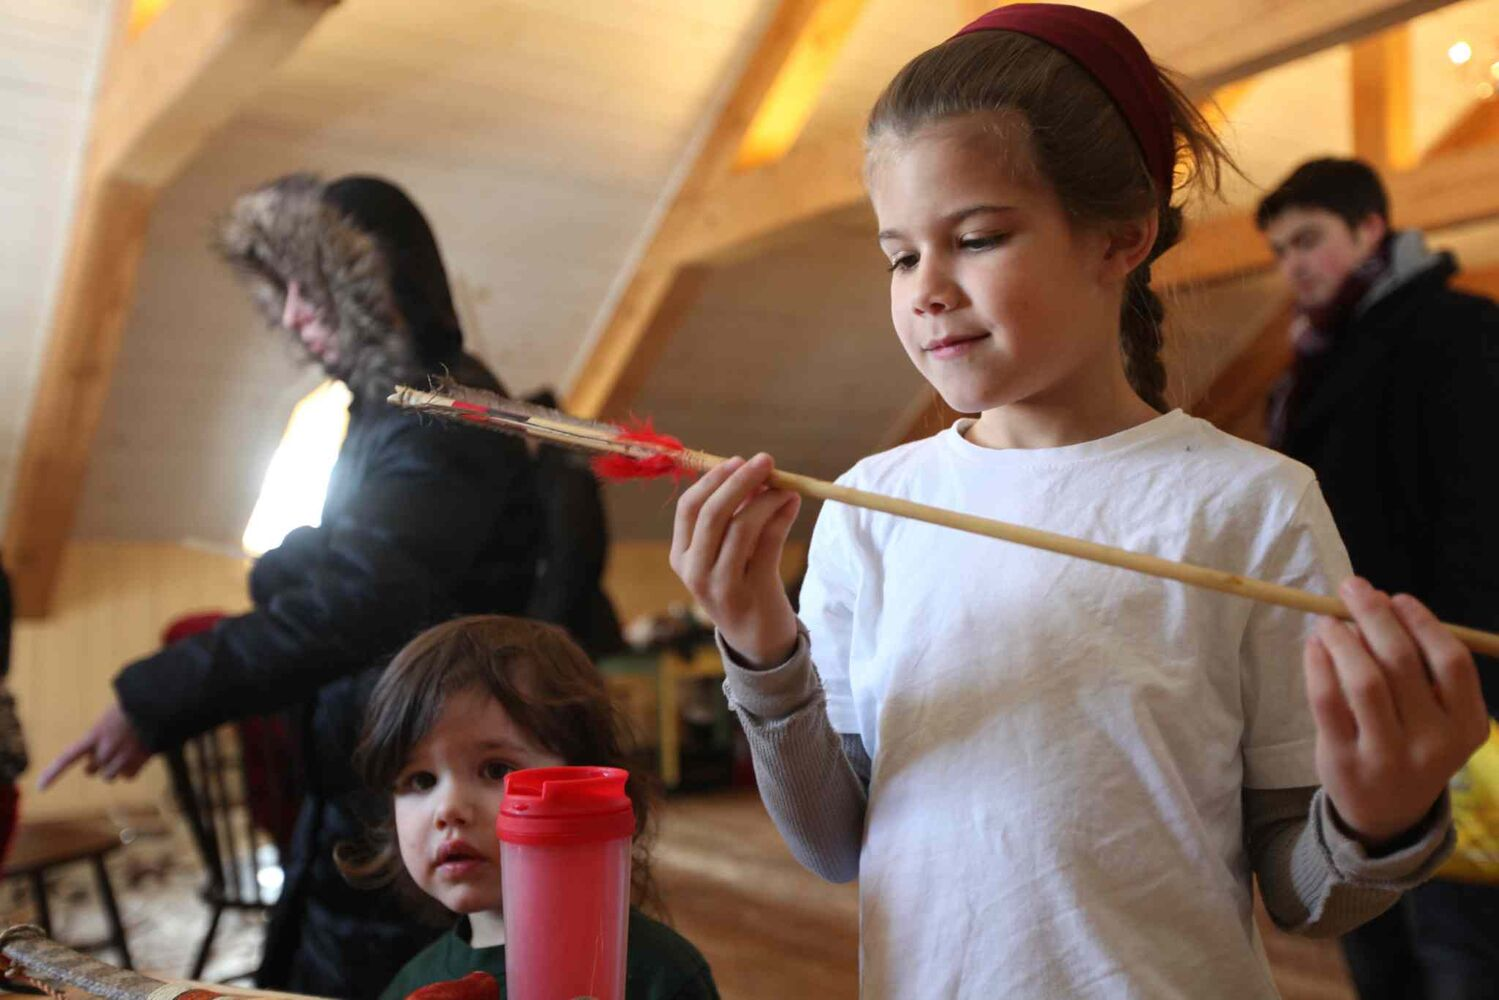 Eight-year-old Liam Greyeyes looks closely at a handcrafted arrow at as his little brother Alex looks on at one of the Festival du Voyageur workshops Saturday.    (Ruth Bonneville / Winnipeg Free Press)